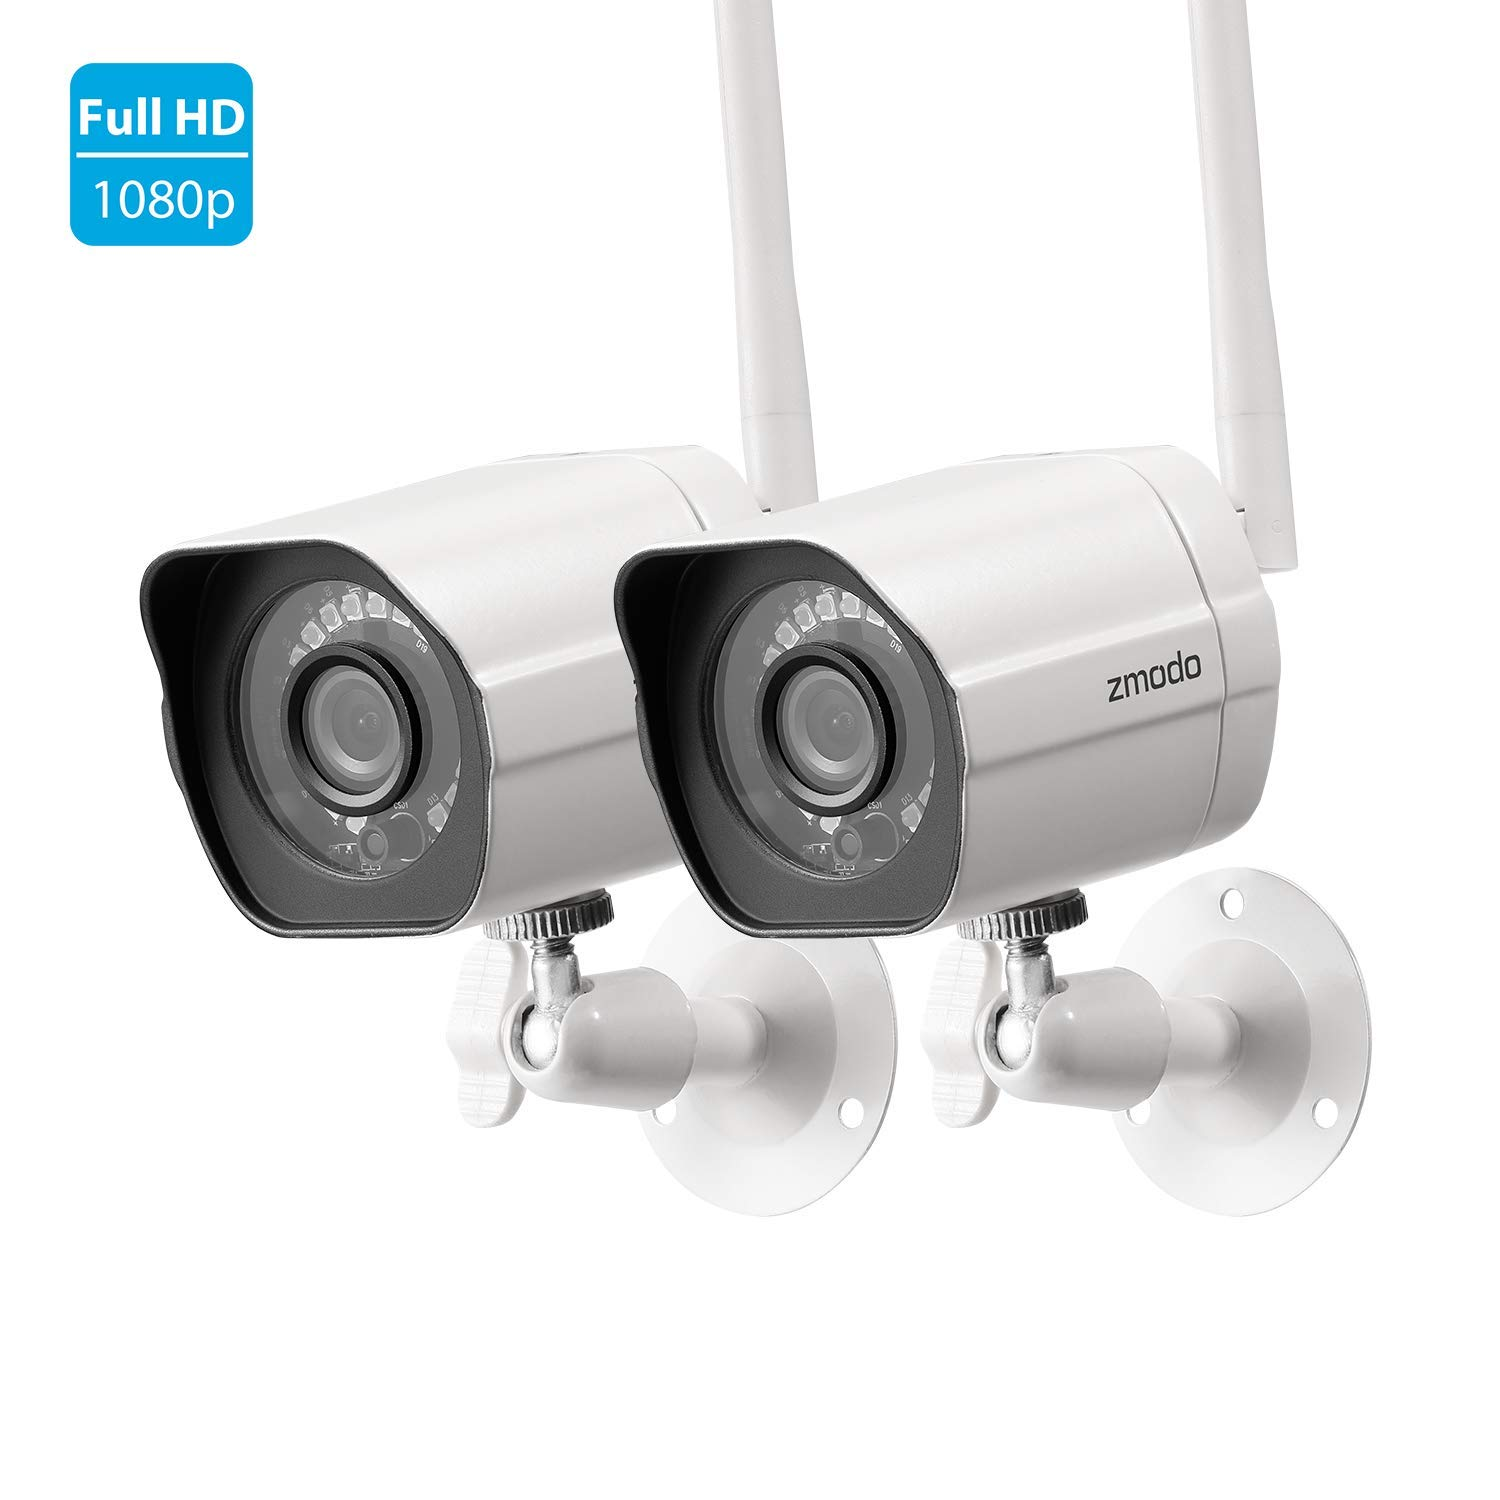 Zmodo 1080p Full HD Outdoor Wireless Security Camera System, 2 Pack Smart Home Indoor Outdoor WiFi IP Cameras with Night Vision, Compatible with Alexa